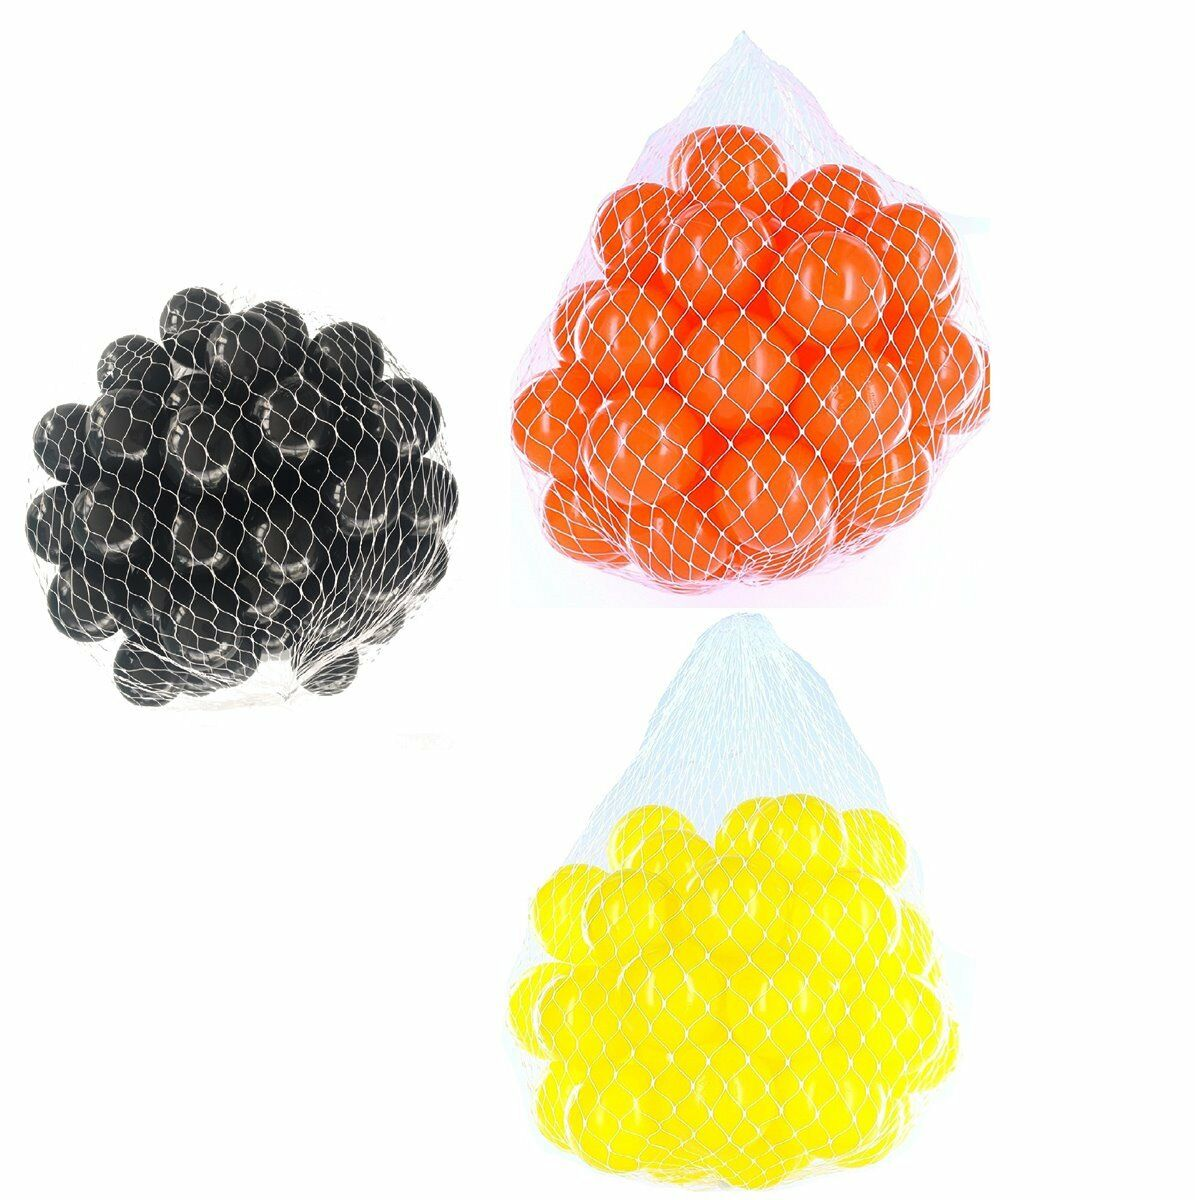 150-9000 Pelotas baño 55mm MIX yellow orange black Mixto colors BABY NIÑO